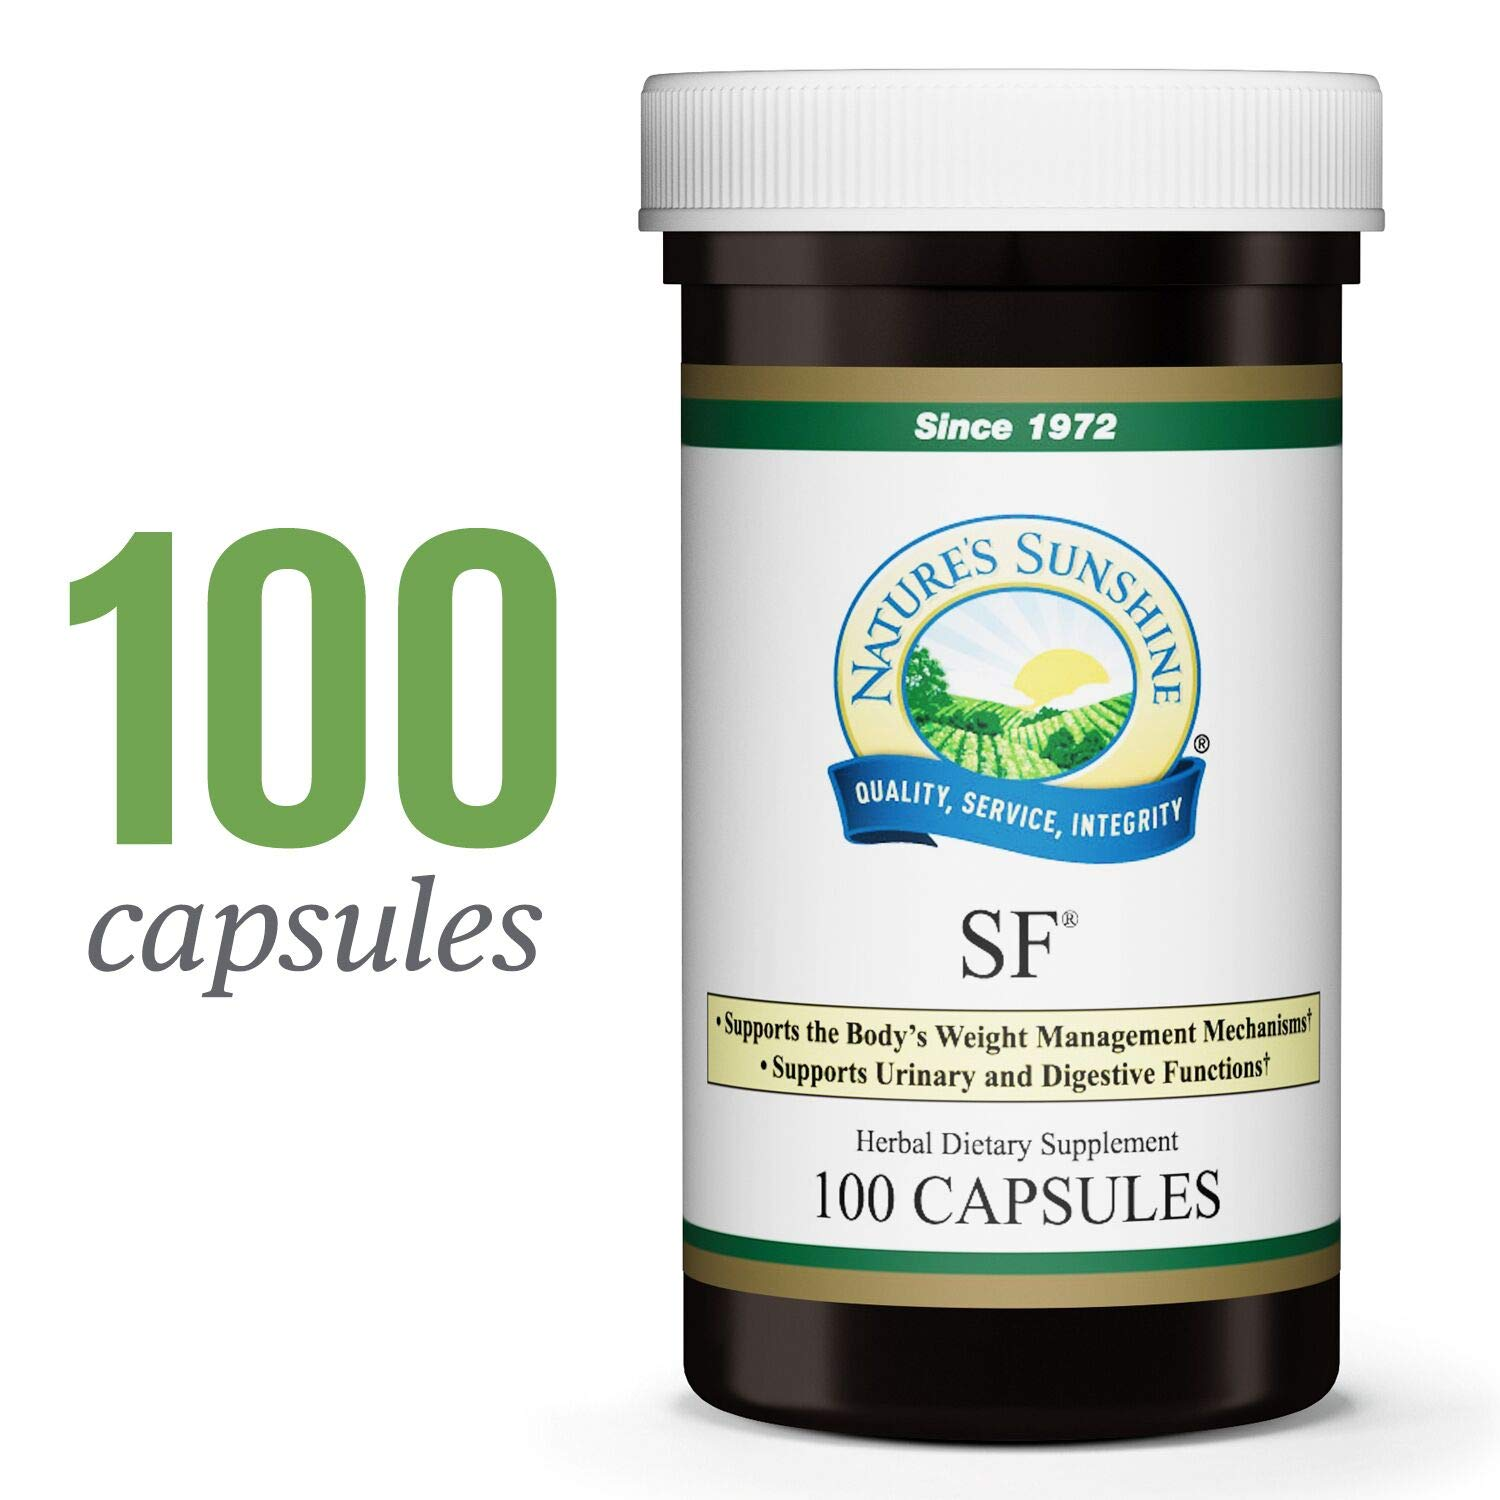 Nature's Sunshine SF, 100 Capsules | Supports Weight Management Efforts with Herbs for The Intestinal, Urinary, and Digestive Systems